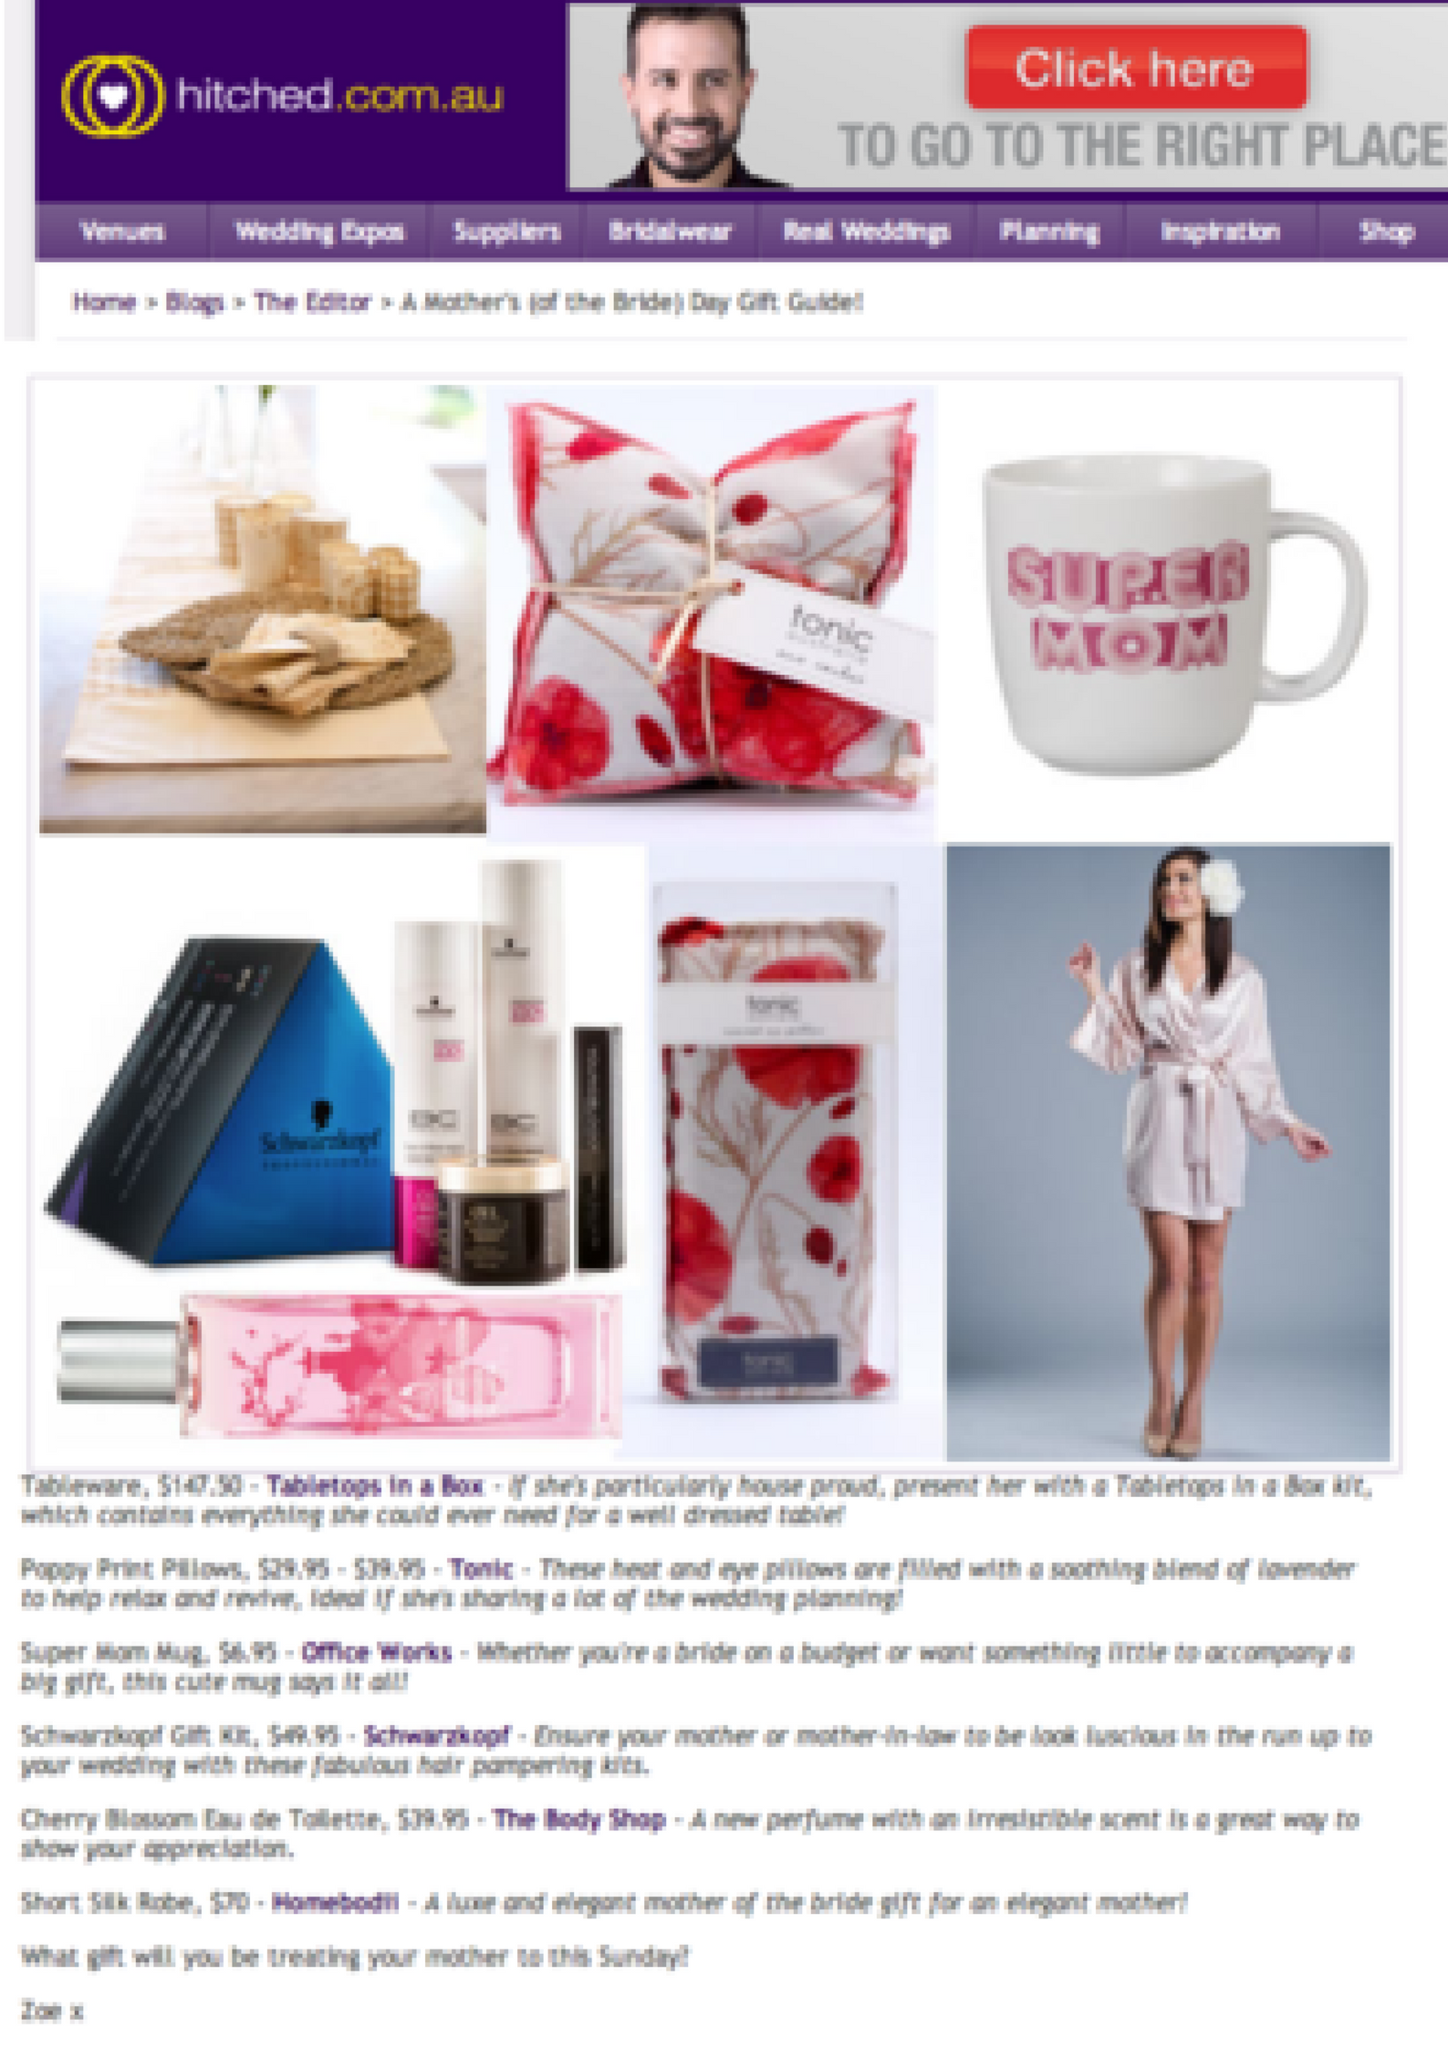 Hitched.com.au Mothers Day Gift Guide.